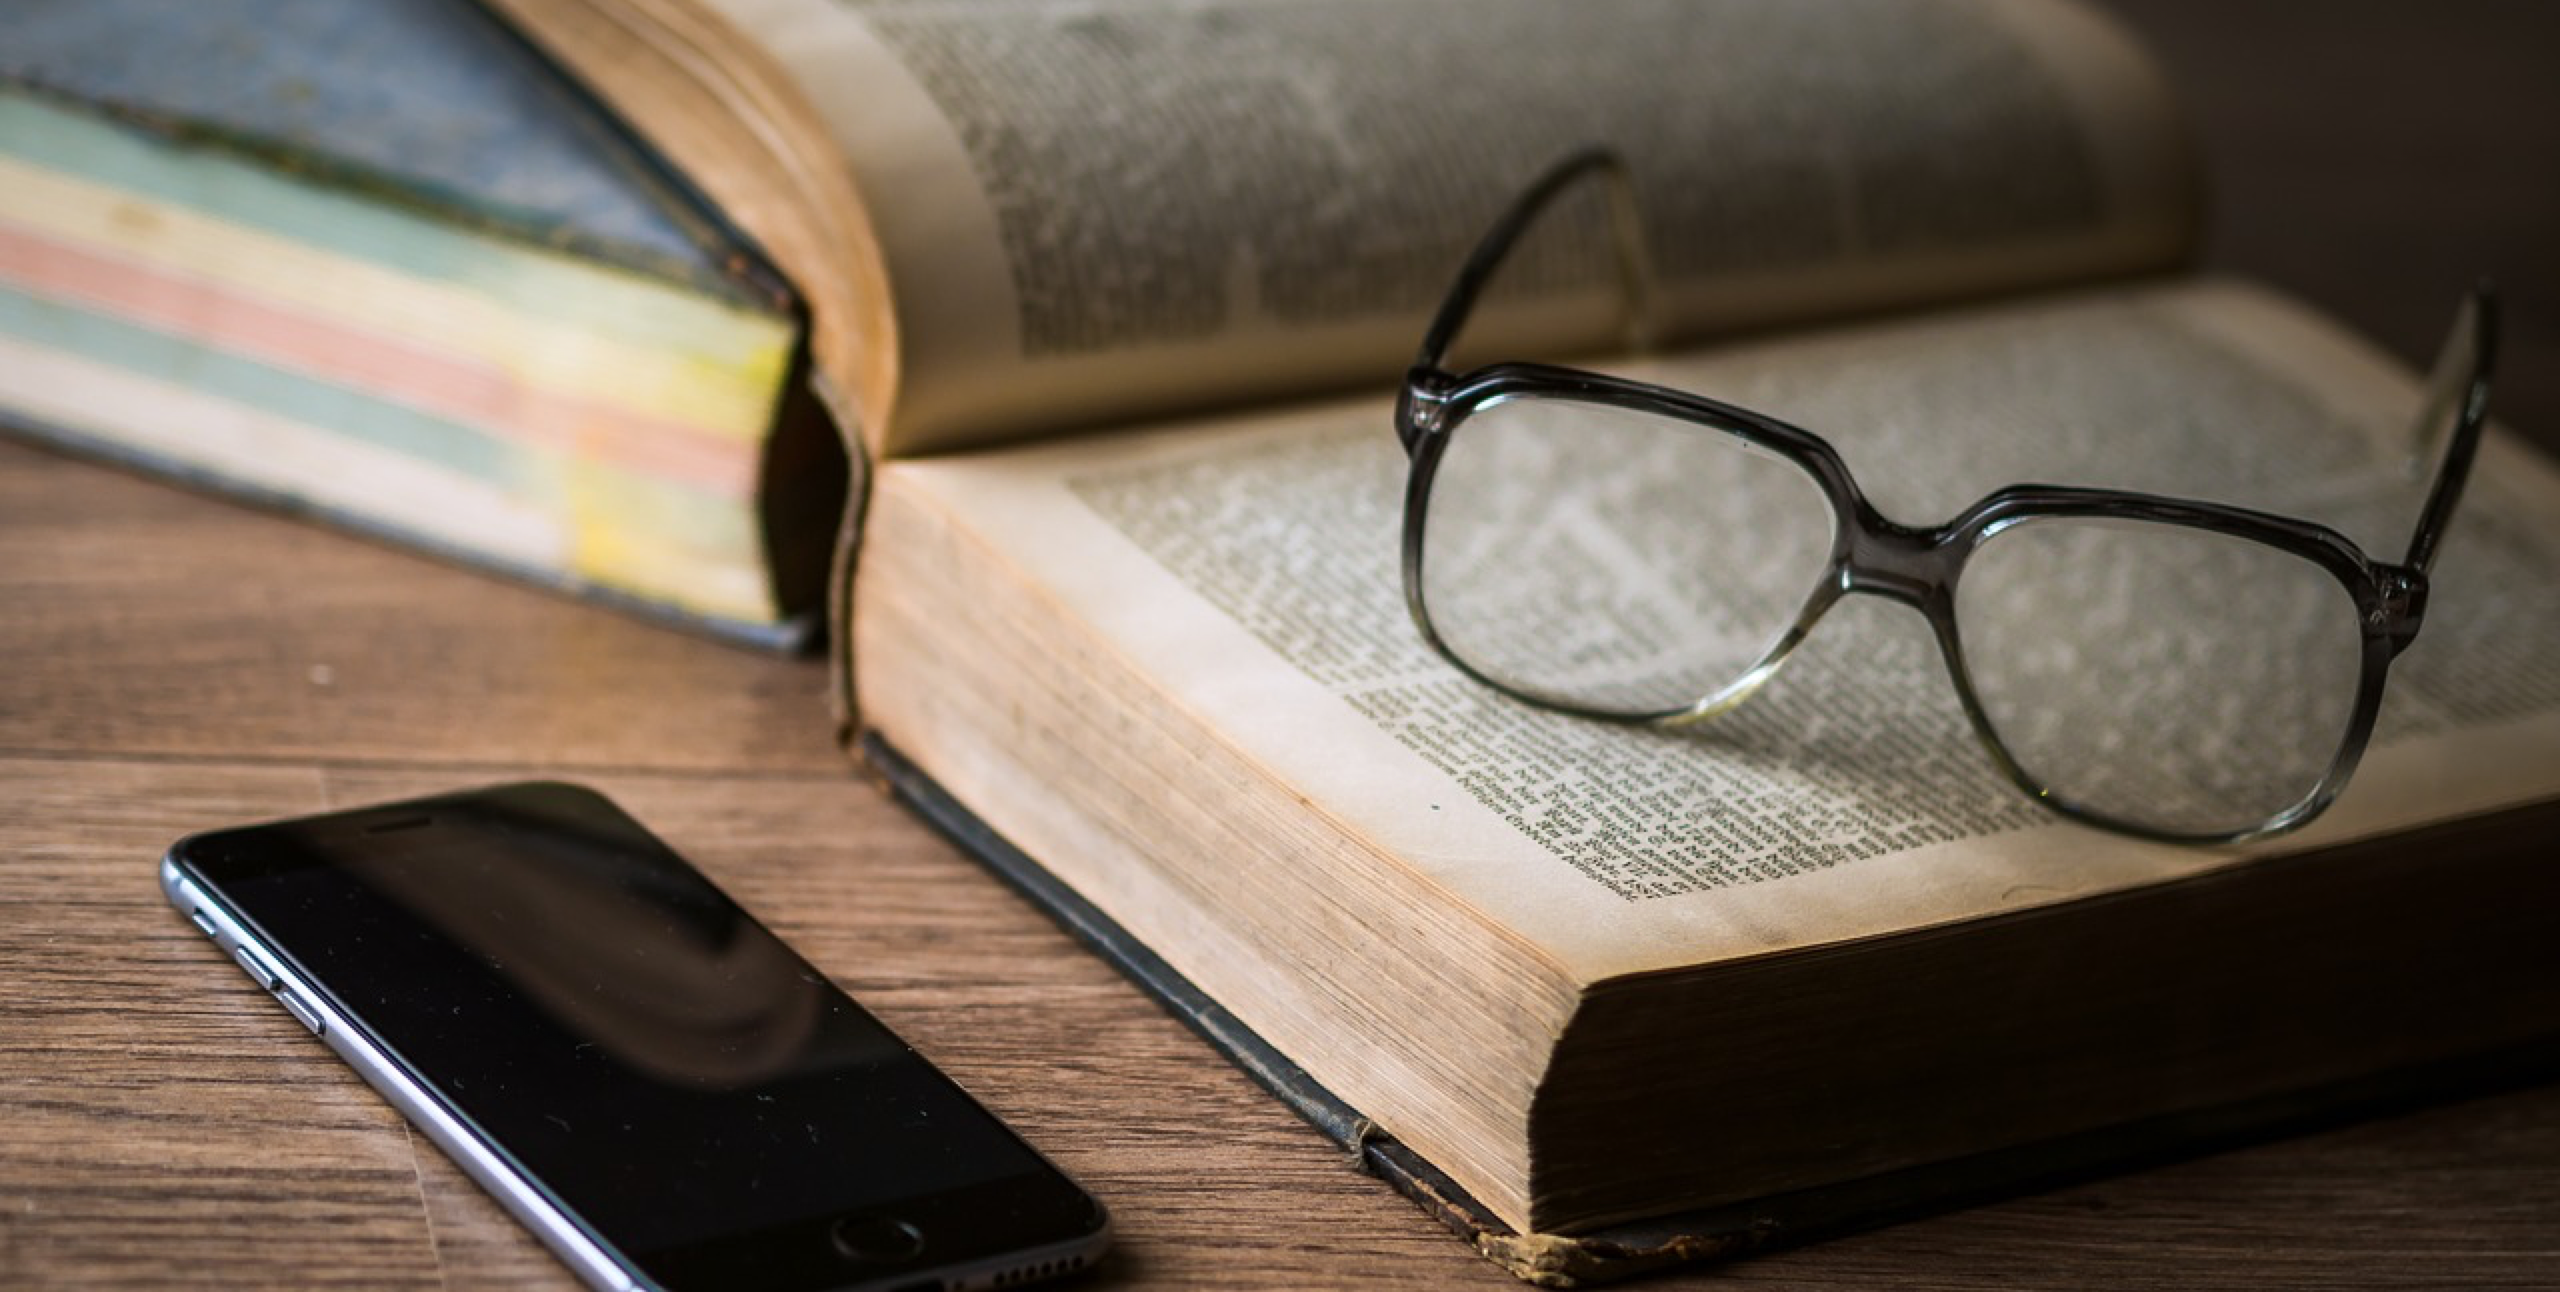 Open book, glasses, and phone – Gregg Pollack's Official Blog